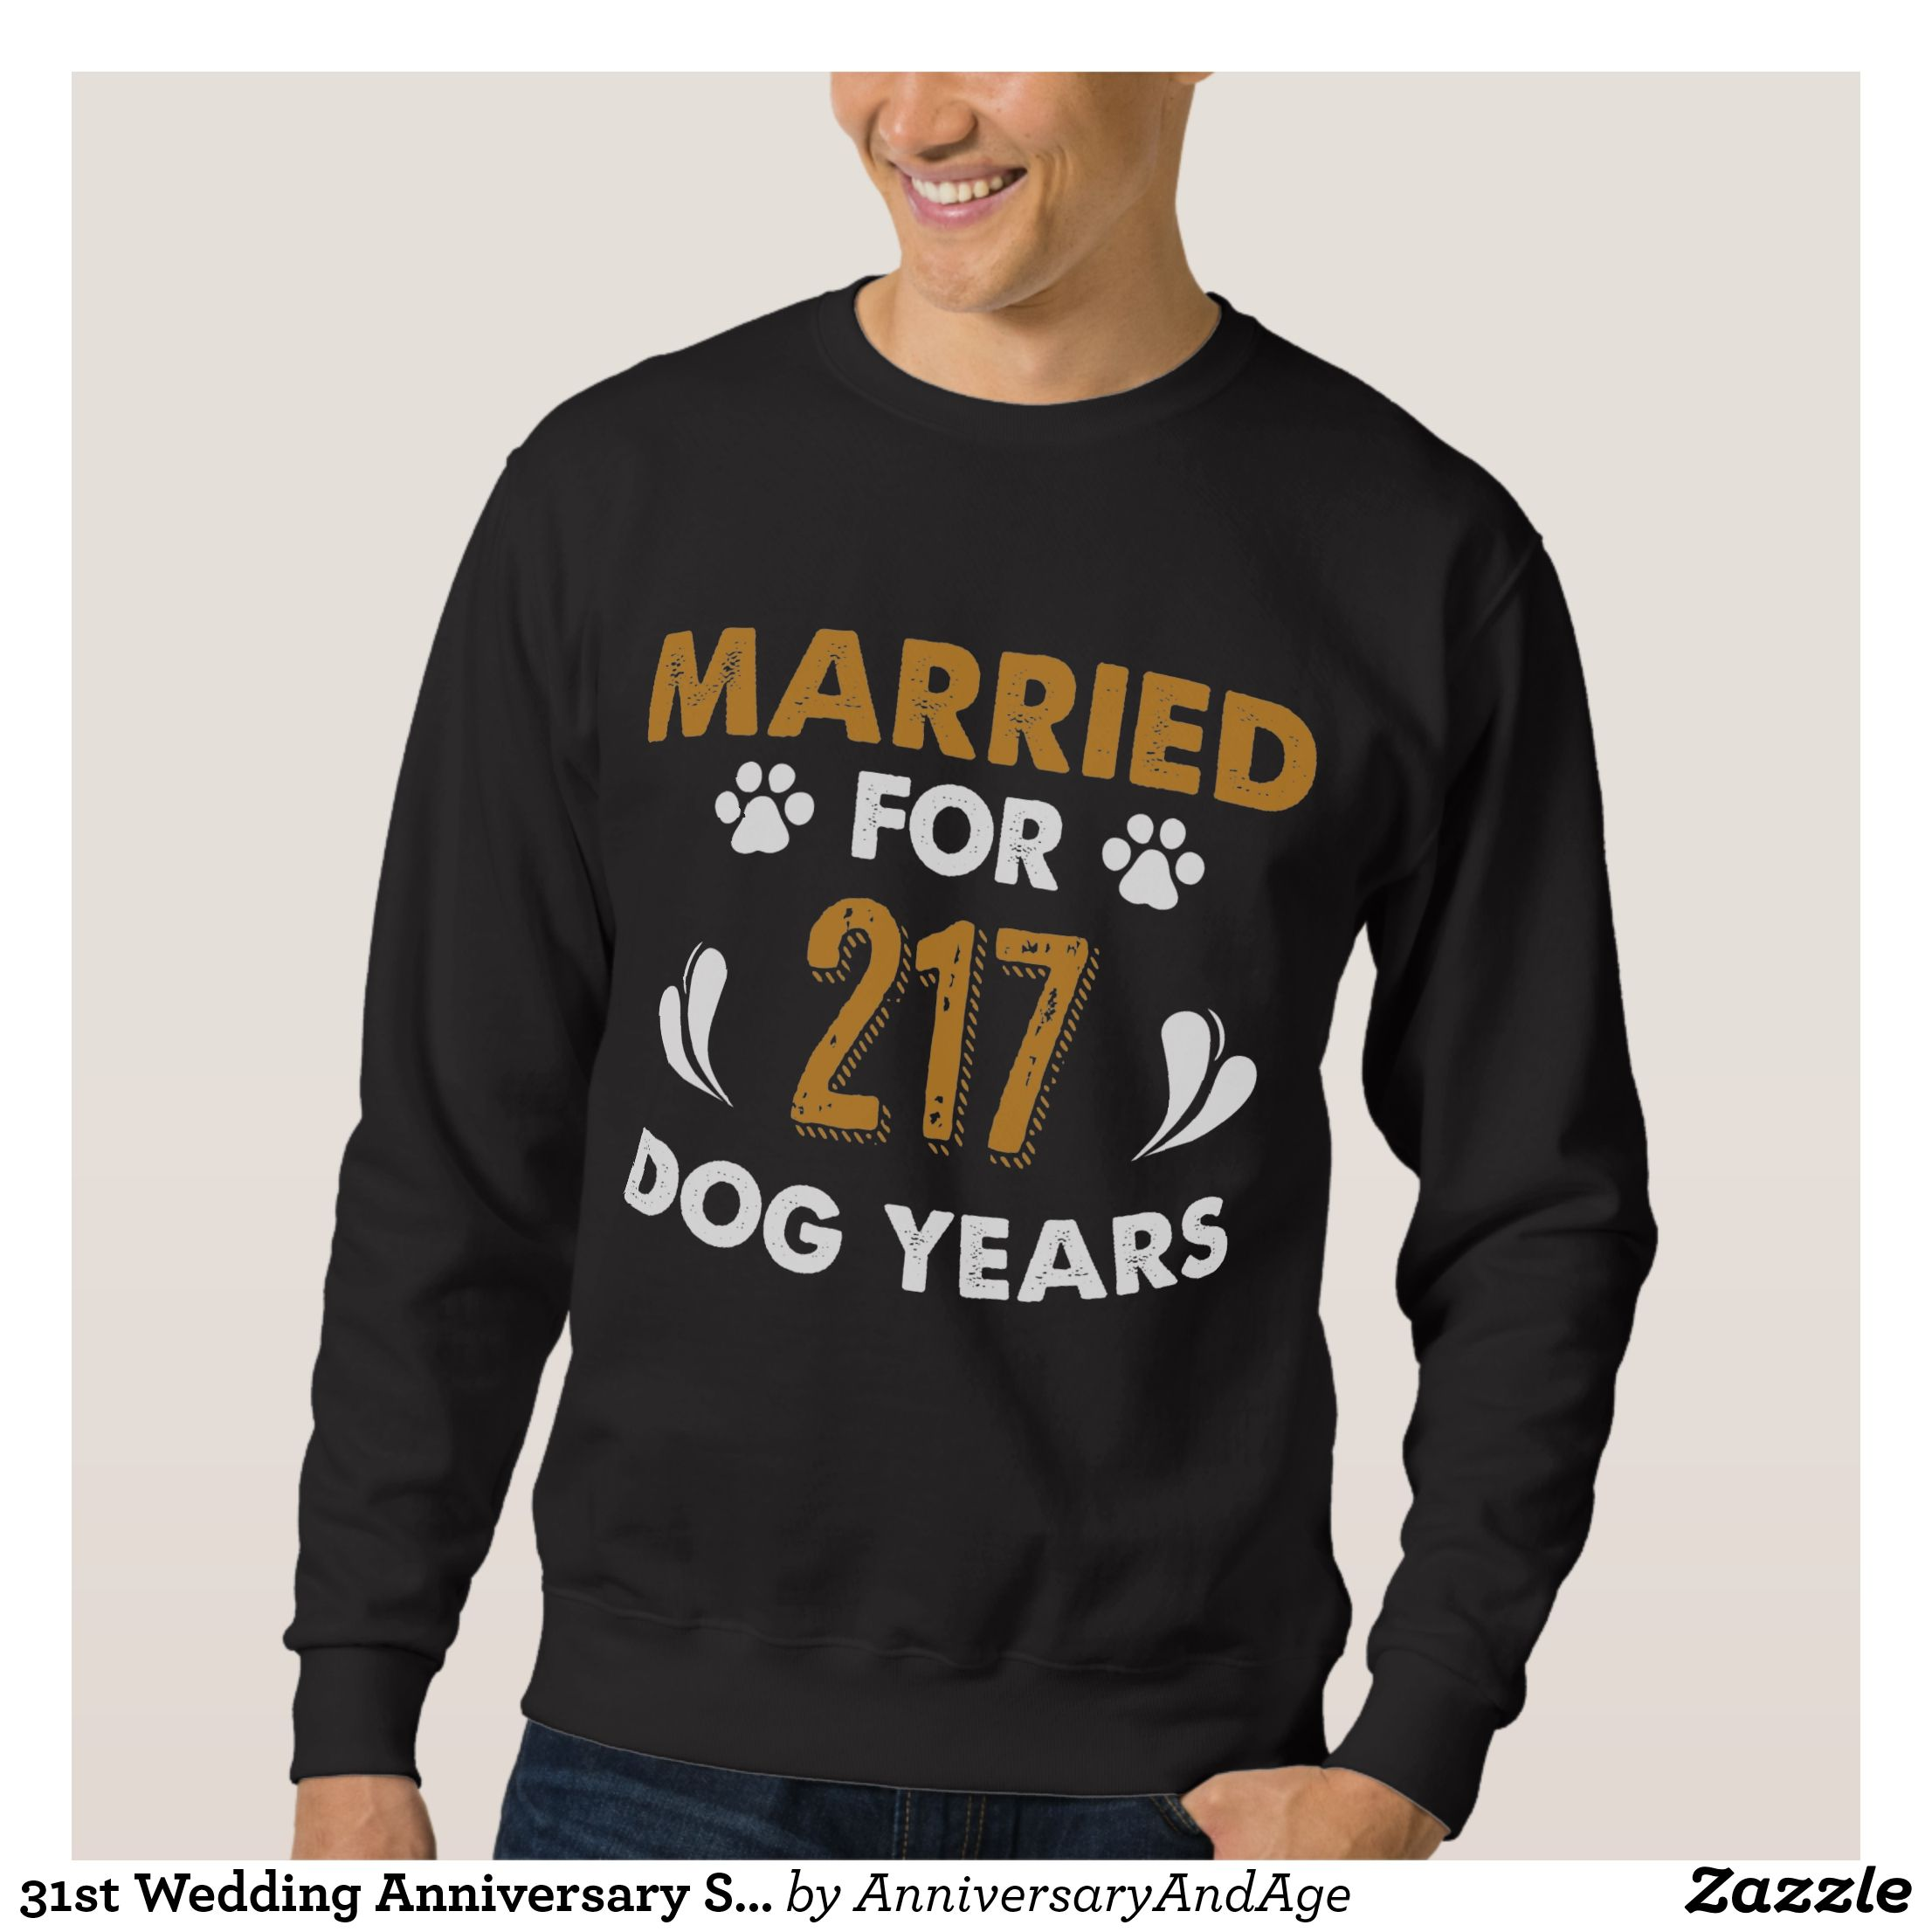 31st Wedding Anniversary Shirt For Dog Lover